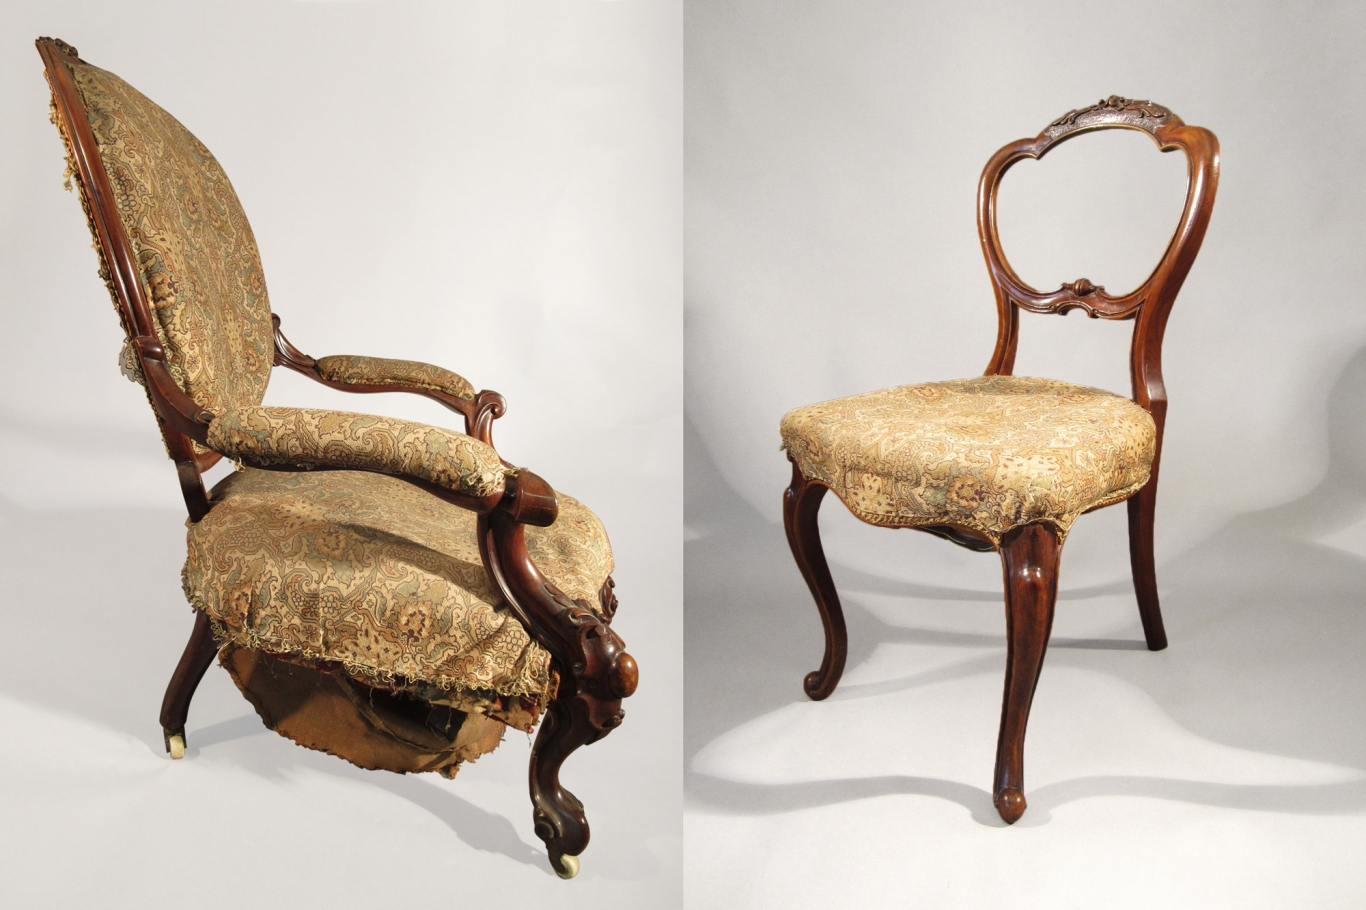 Two photos of old chairs - one with arms before repairs to the springs, which are visible, and one without arms after repairs.